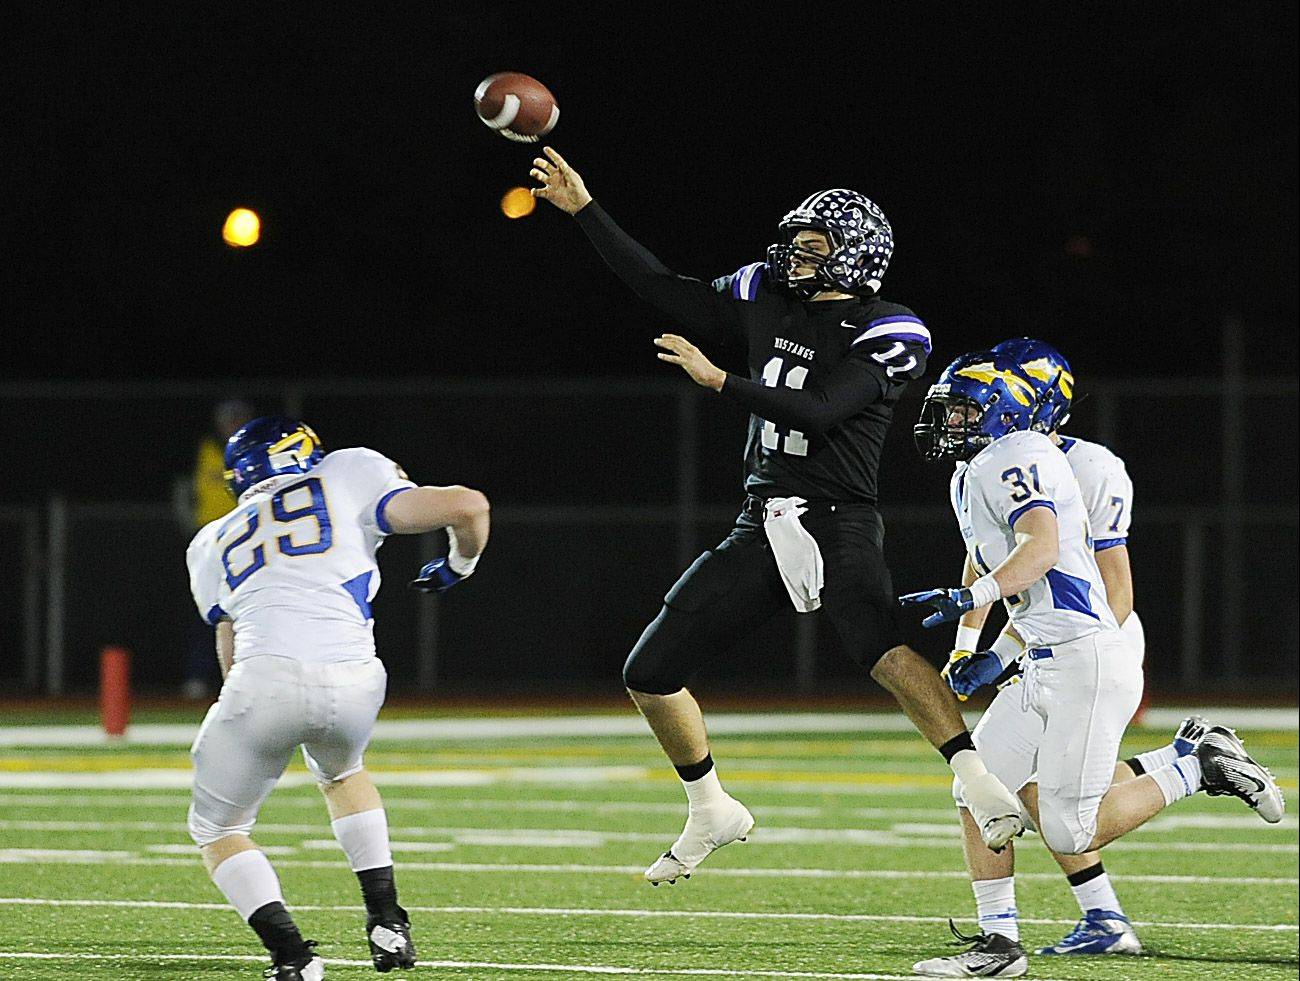 Rolling Meadows� Jack Milas lofts a pass from mid-air to Alex Niecikowski for a 64-yard completion in Class 6A first-round playoff action Friday at Meadows.